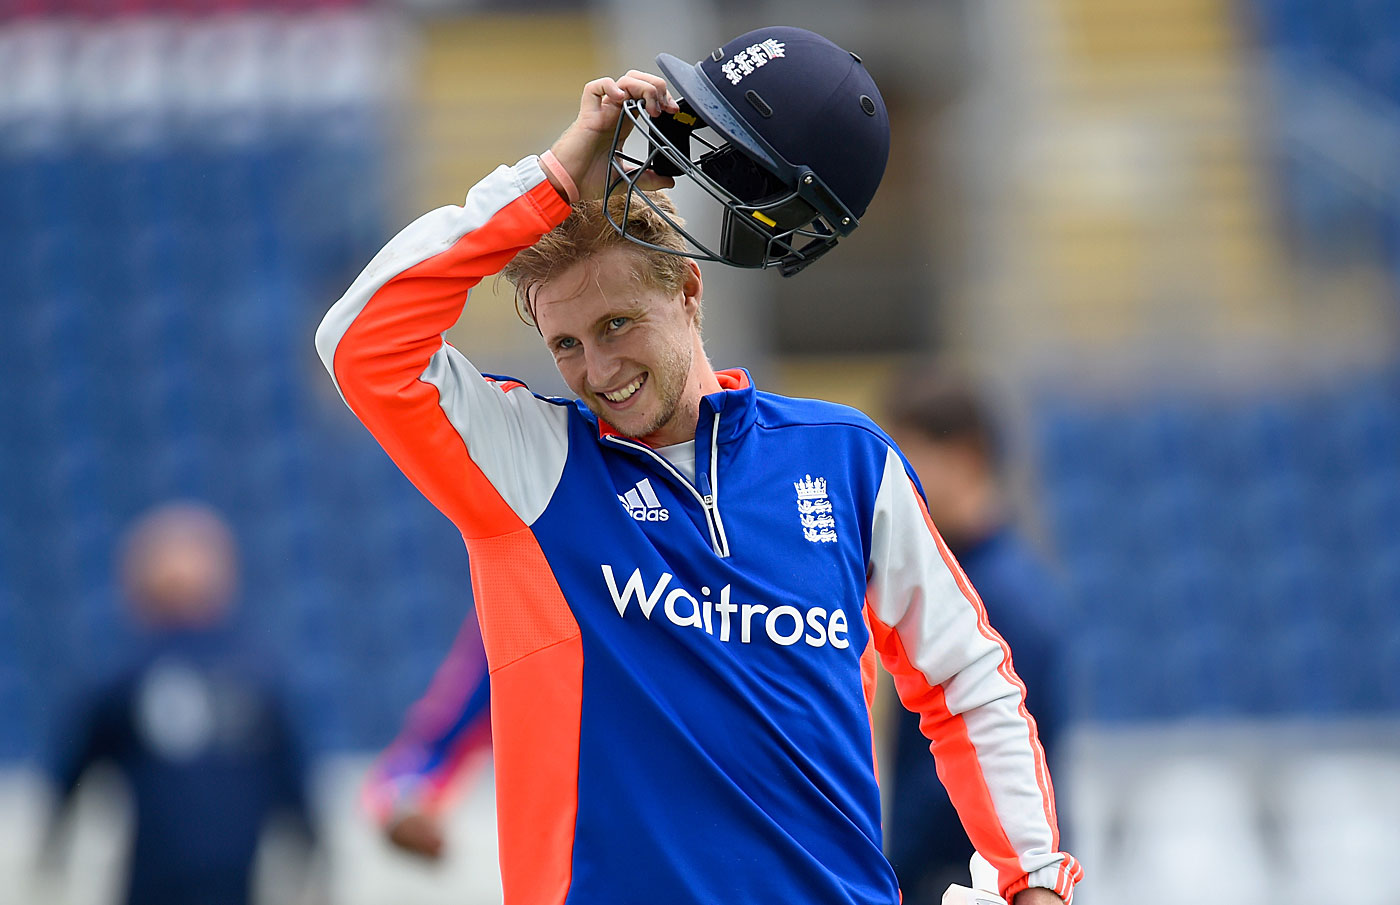 Joe Root had the character to change his character so he could enjoy cricket more